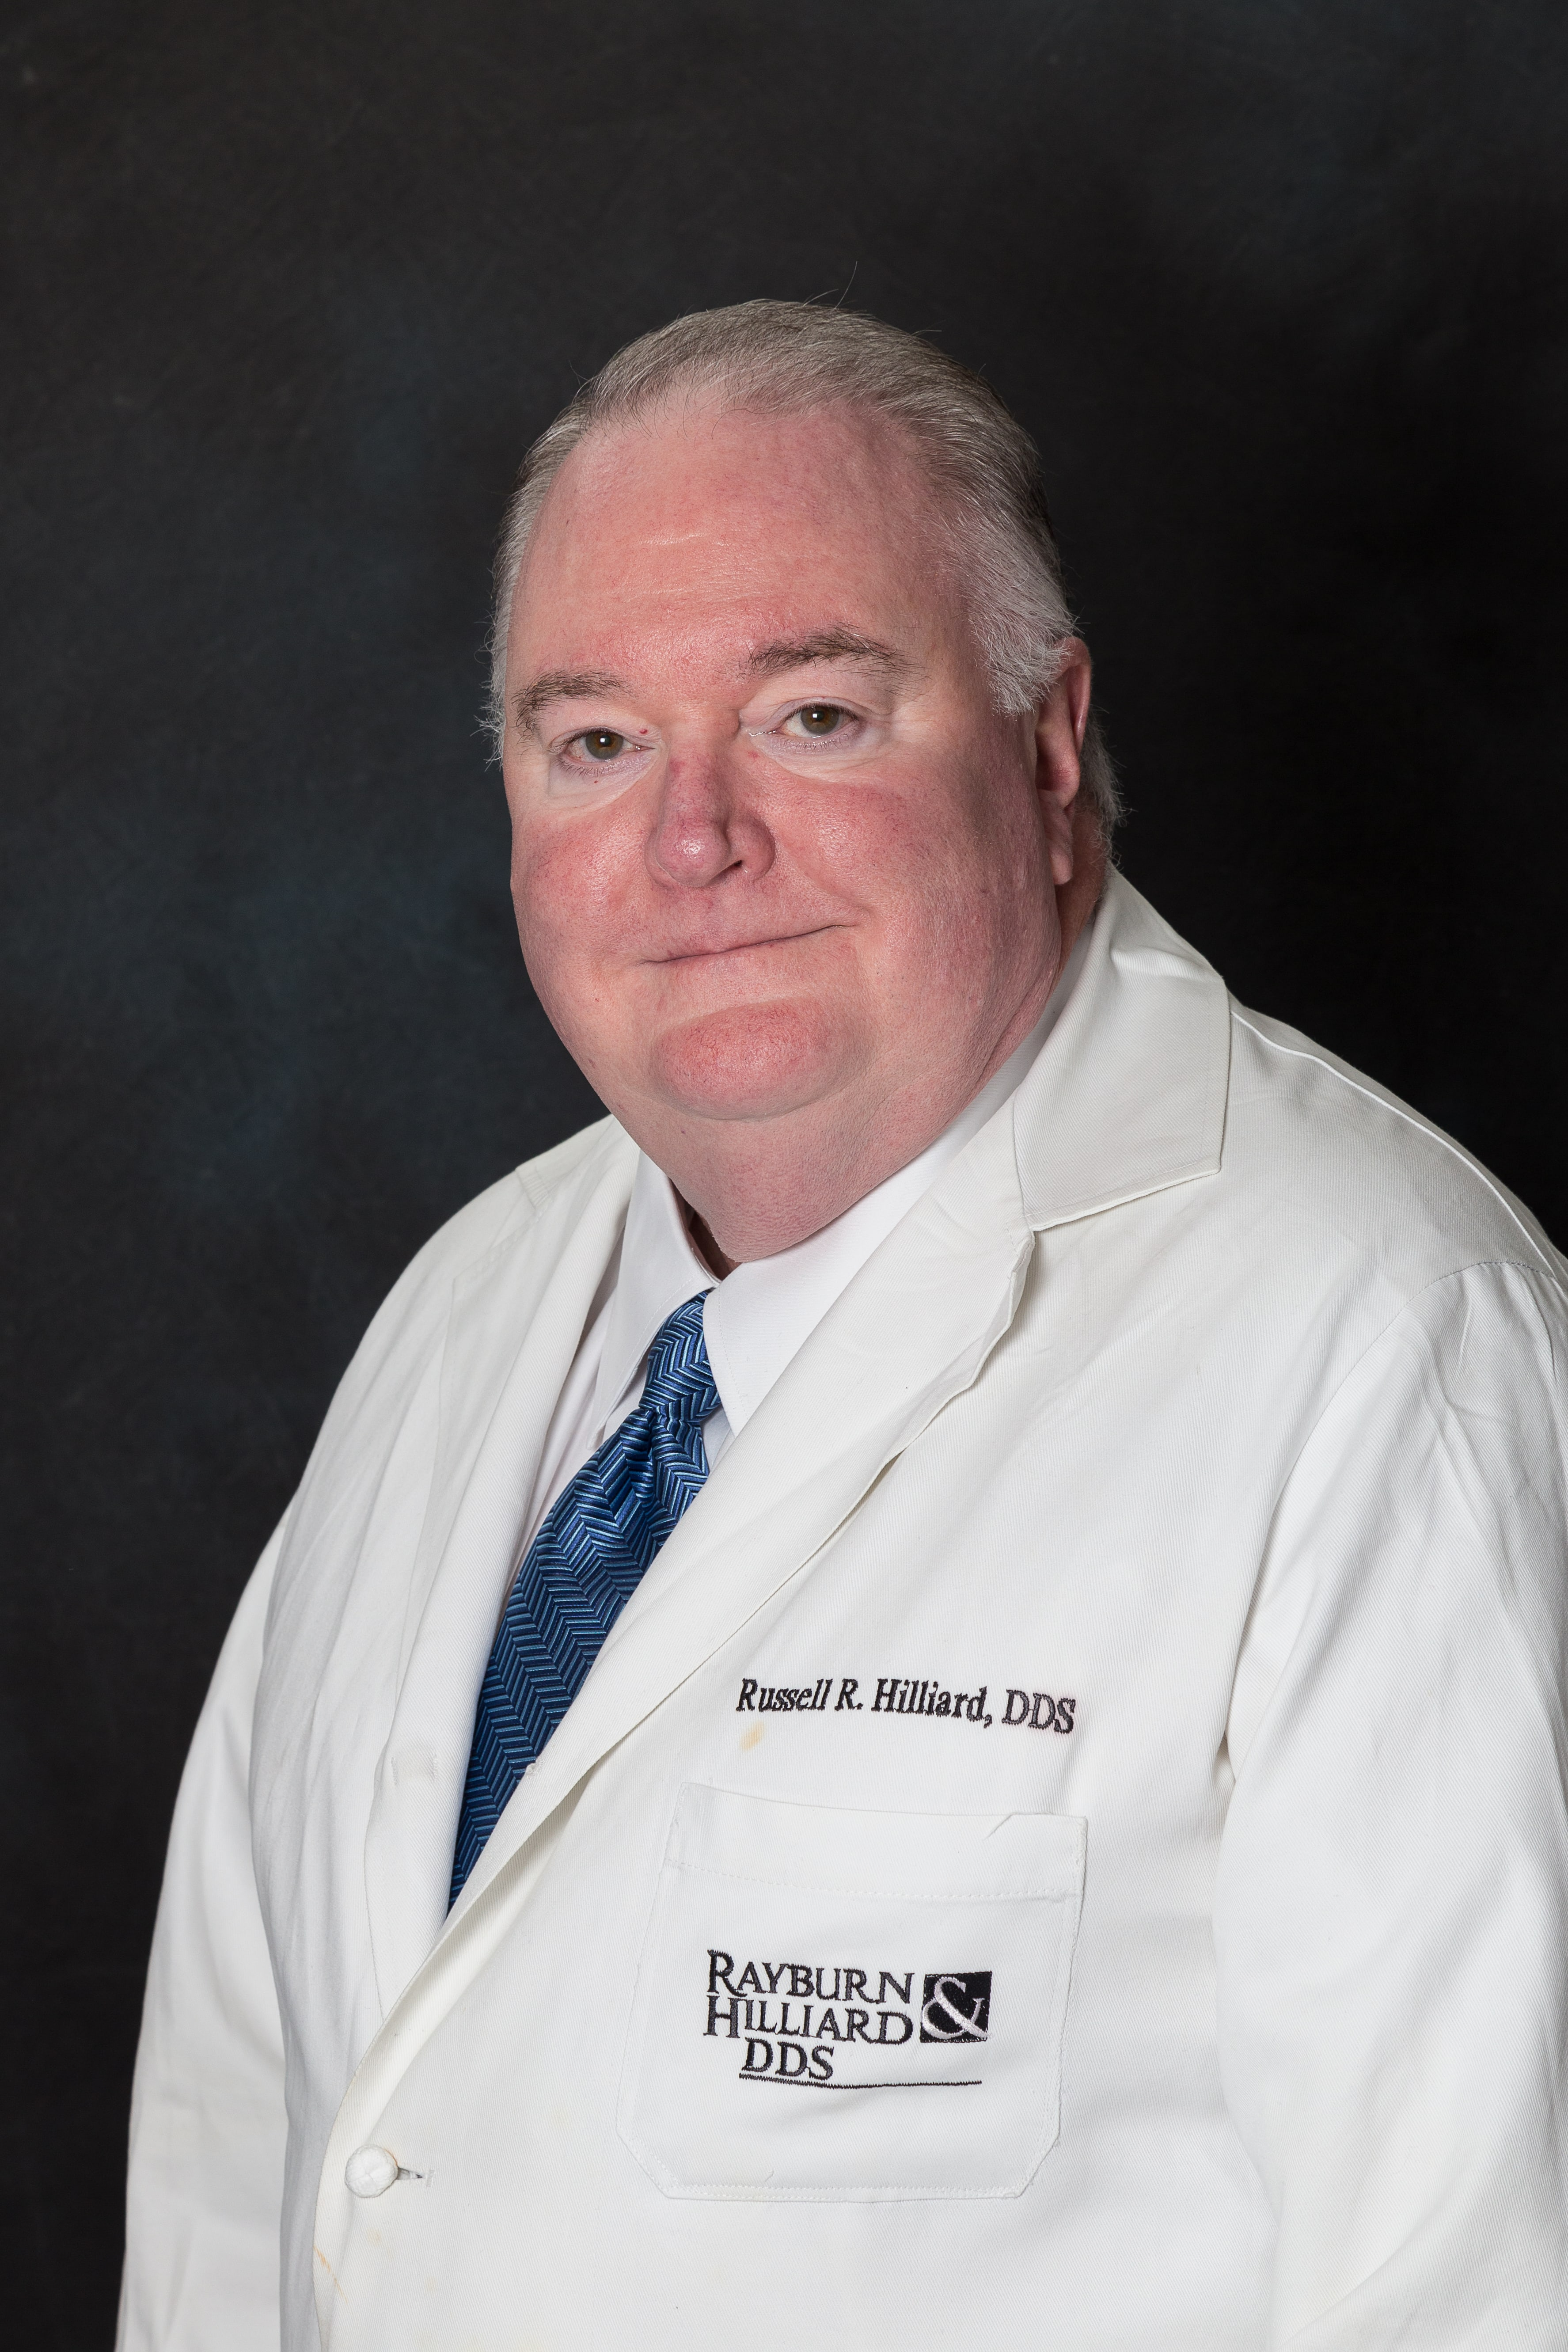 Dr. Russell R. Hilliard